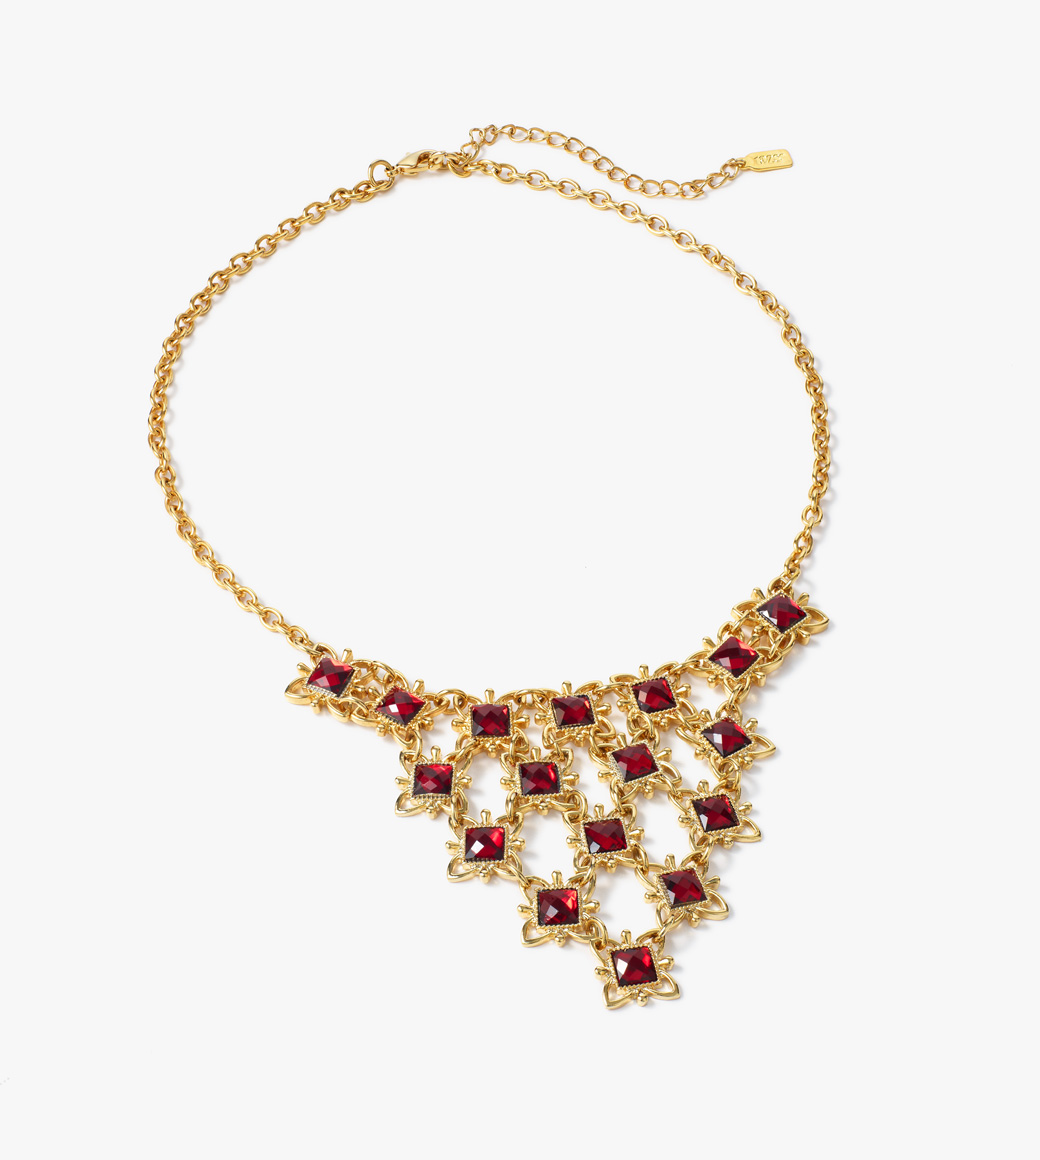 costume jewelry necklaces statement necklaces fqxmxes